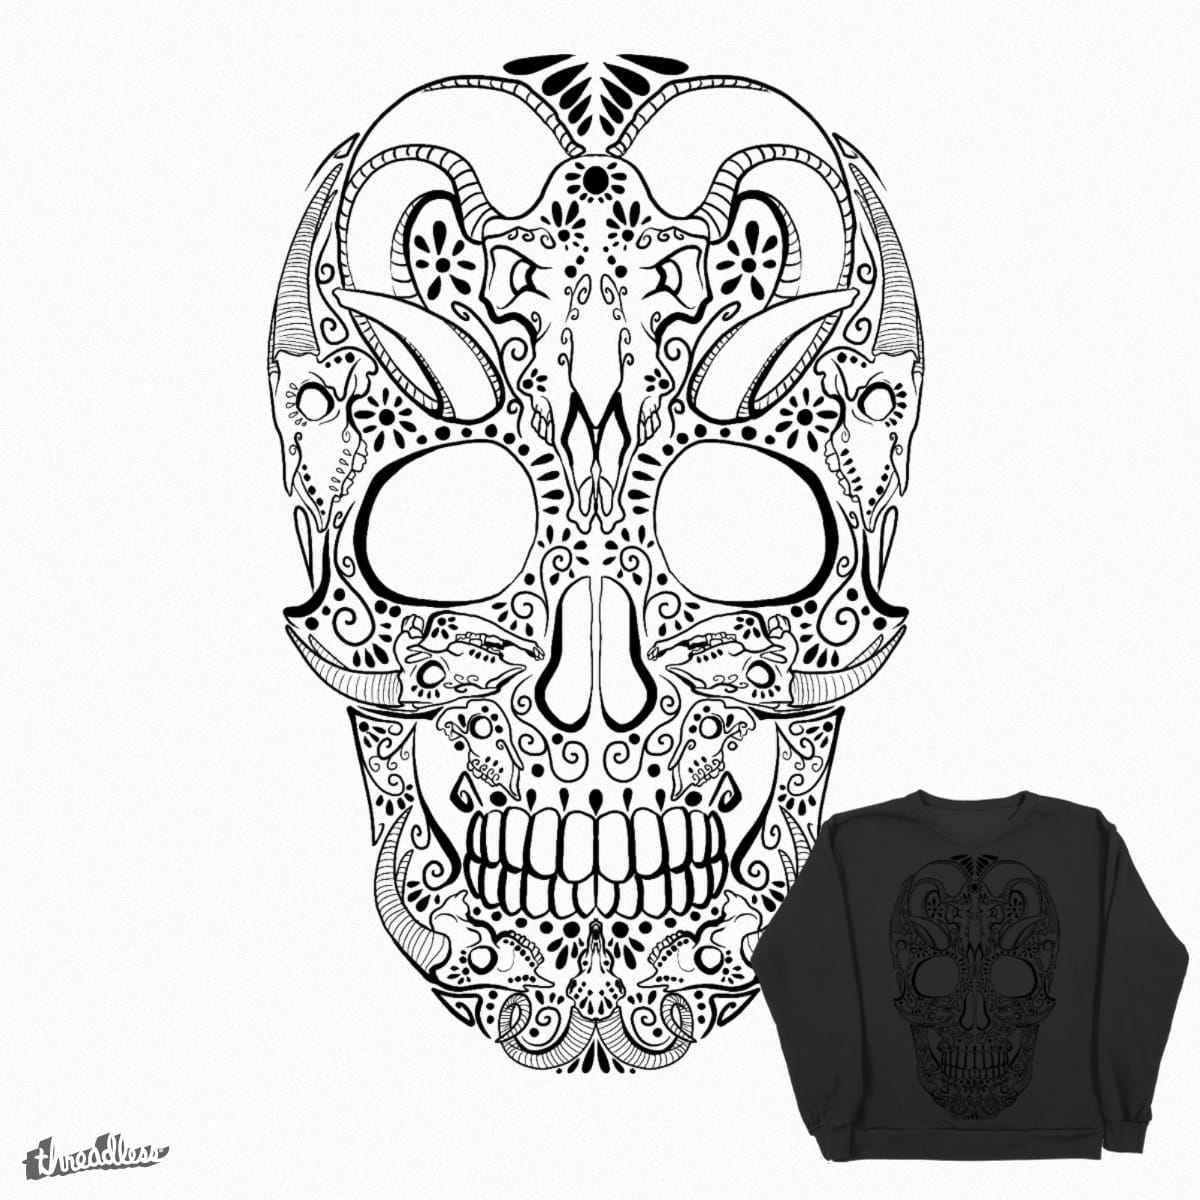 Score Mexican Skull Design Mattia Venza Threadless